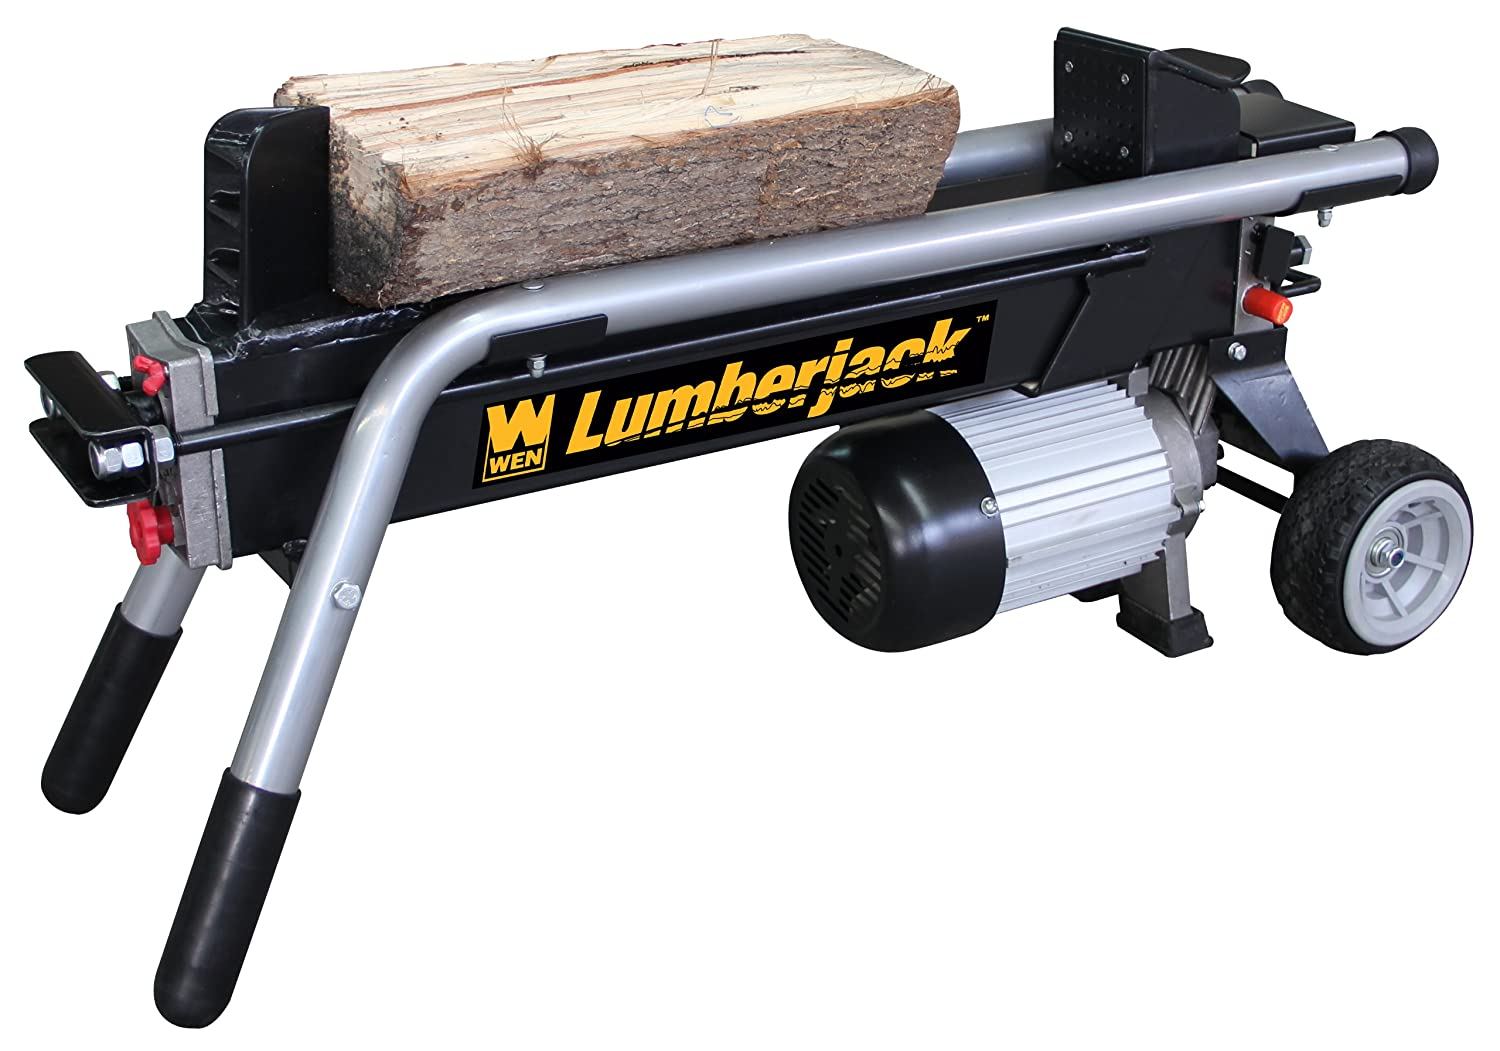 Other Honorable Mention: Wen 56206 6 Ton Electric Wood Splitter